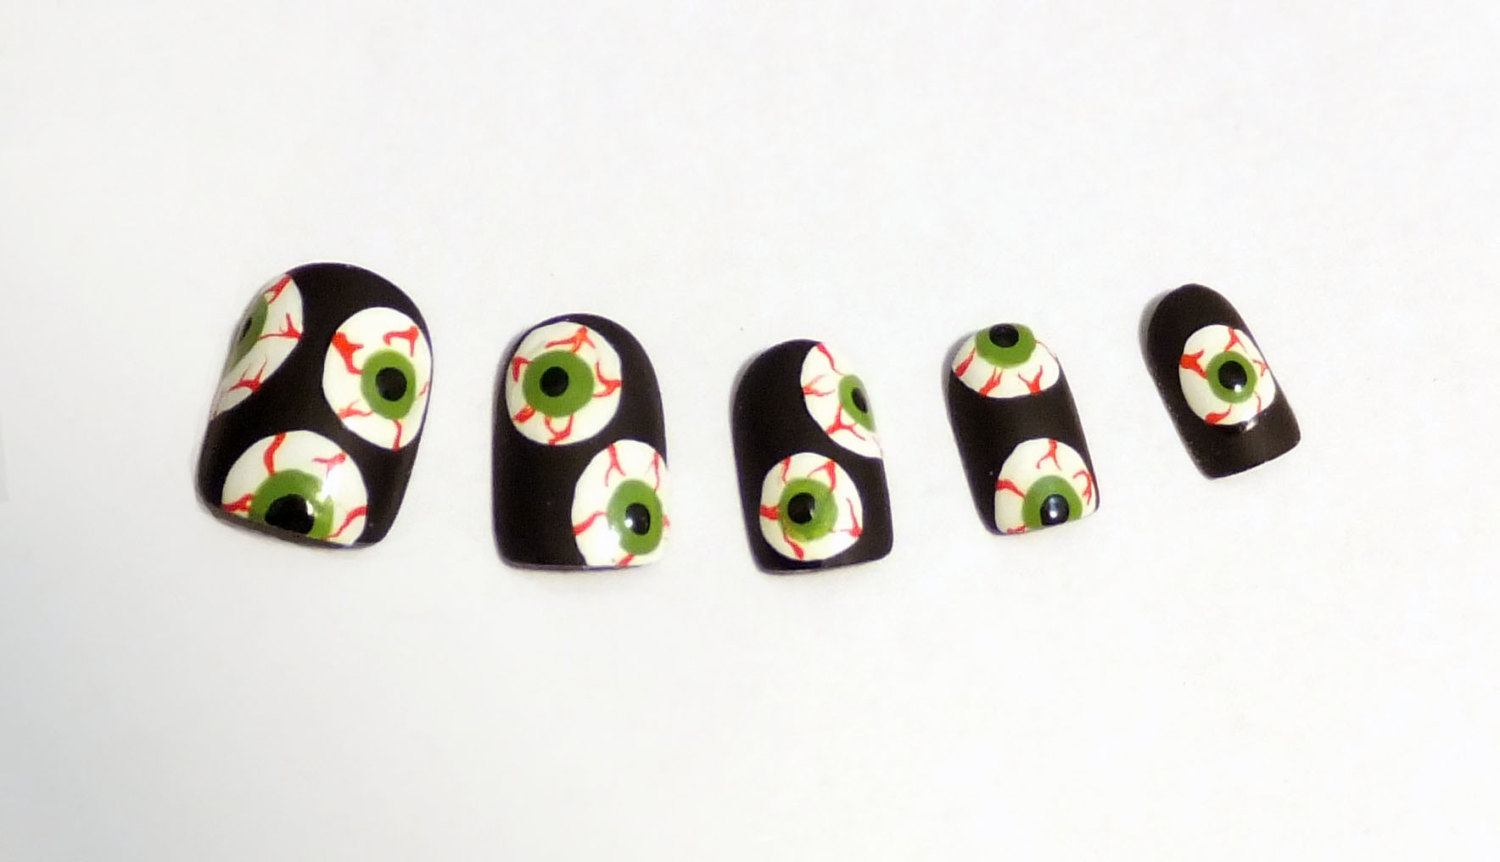 Bloodshot nail art takes some serious skill, but you can still get the look with these glue-on nails ($20).